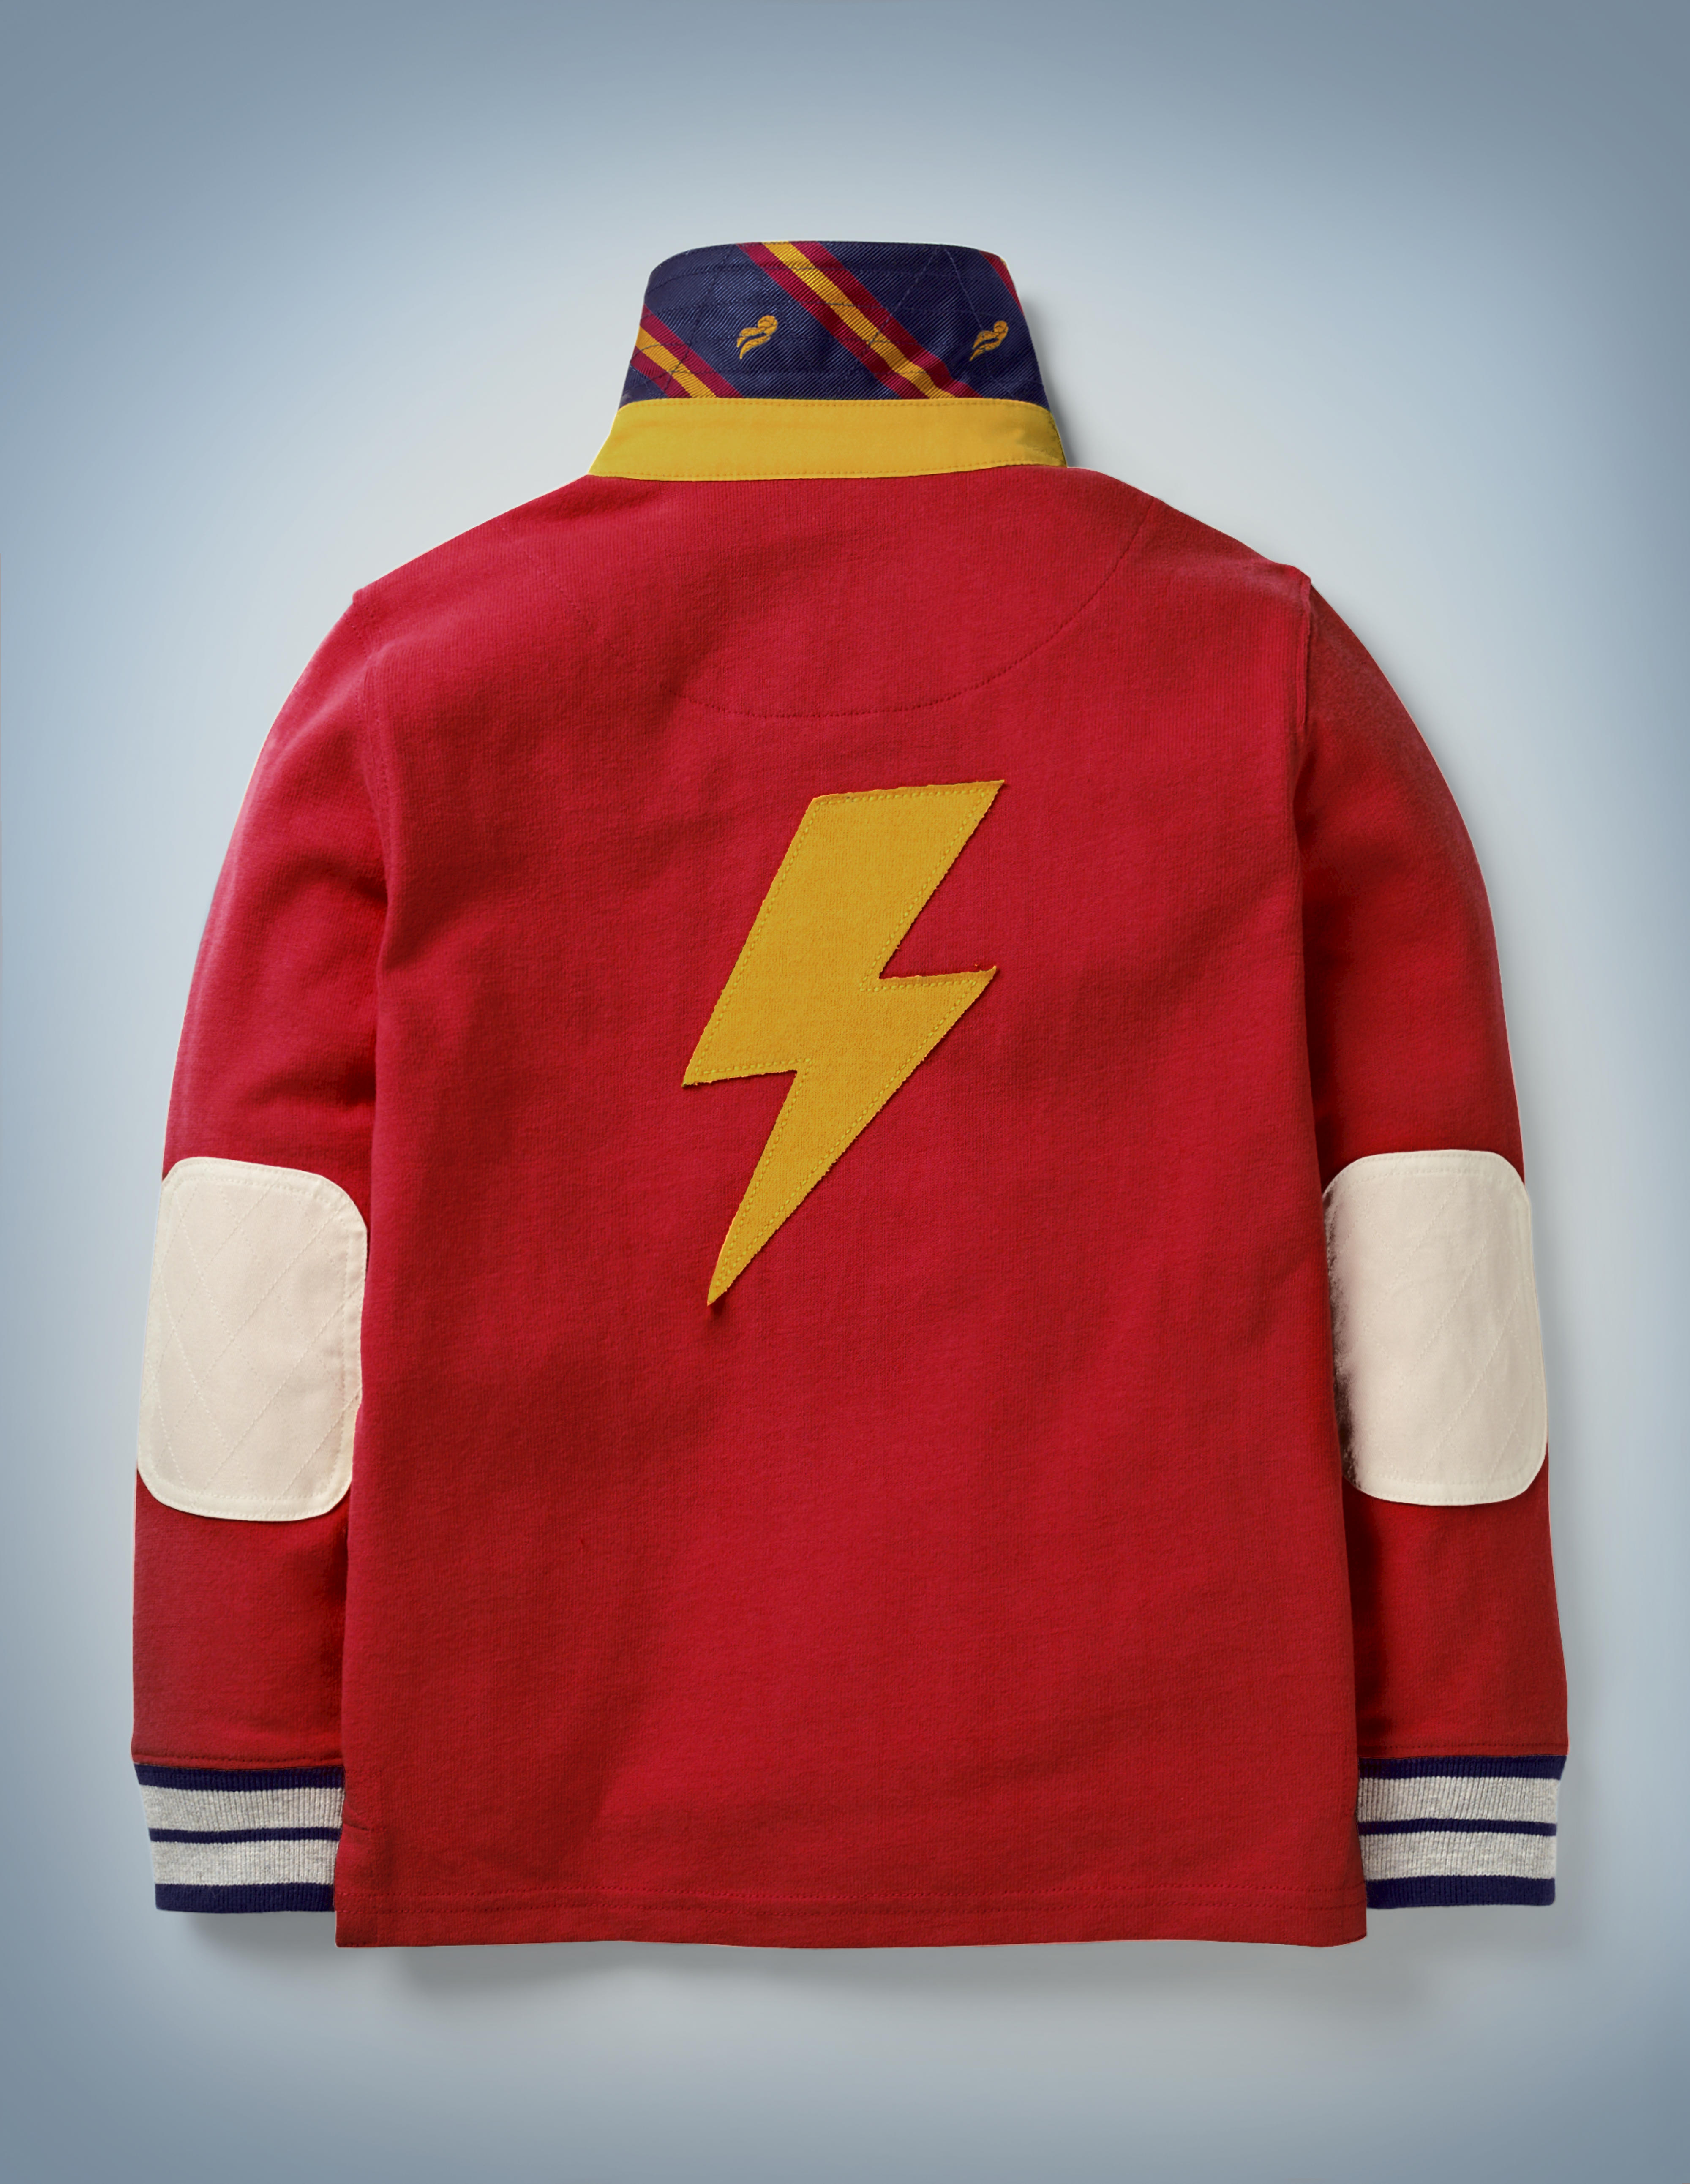 This view of the back of the Mini Boden Hogwarts Rugby Shirt in red showcases a large lightning bolt design. It retails at £30.